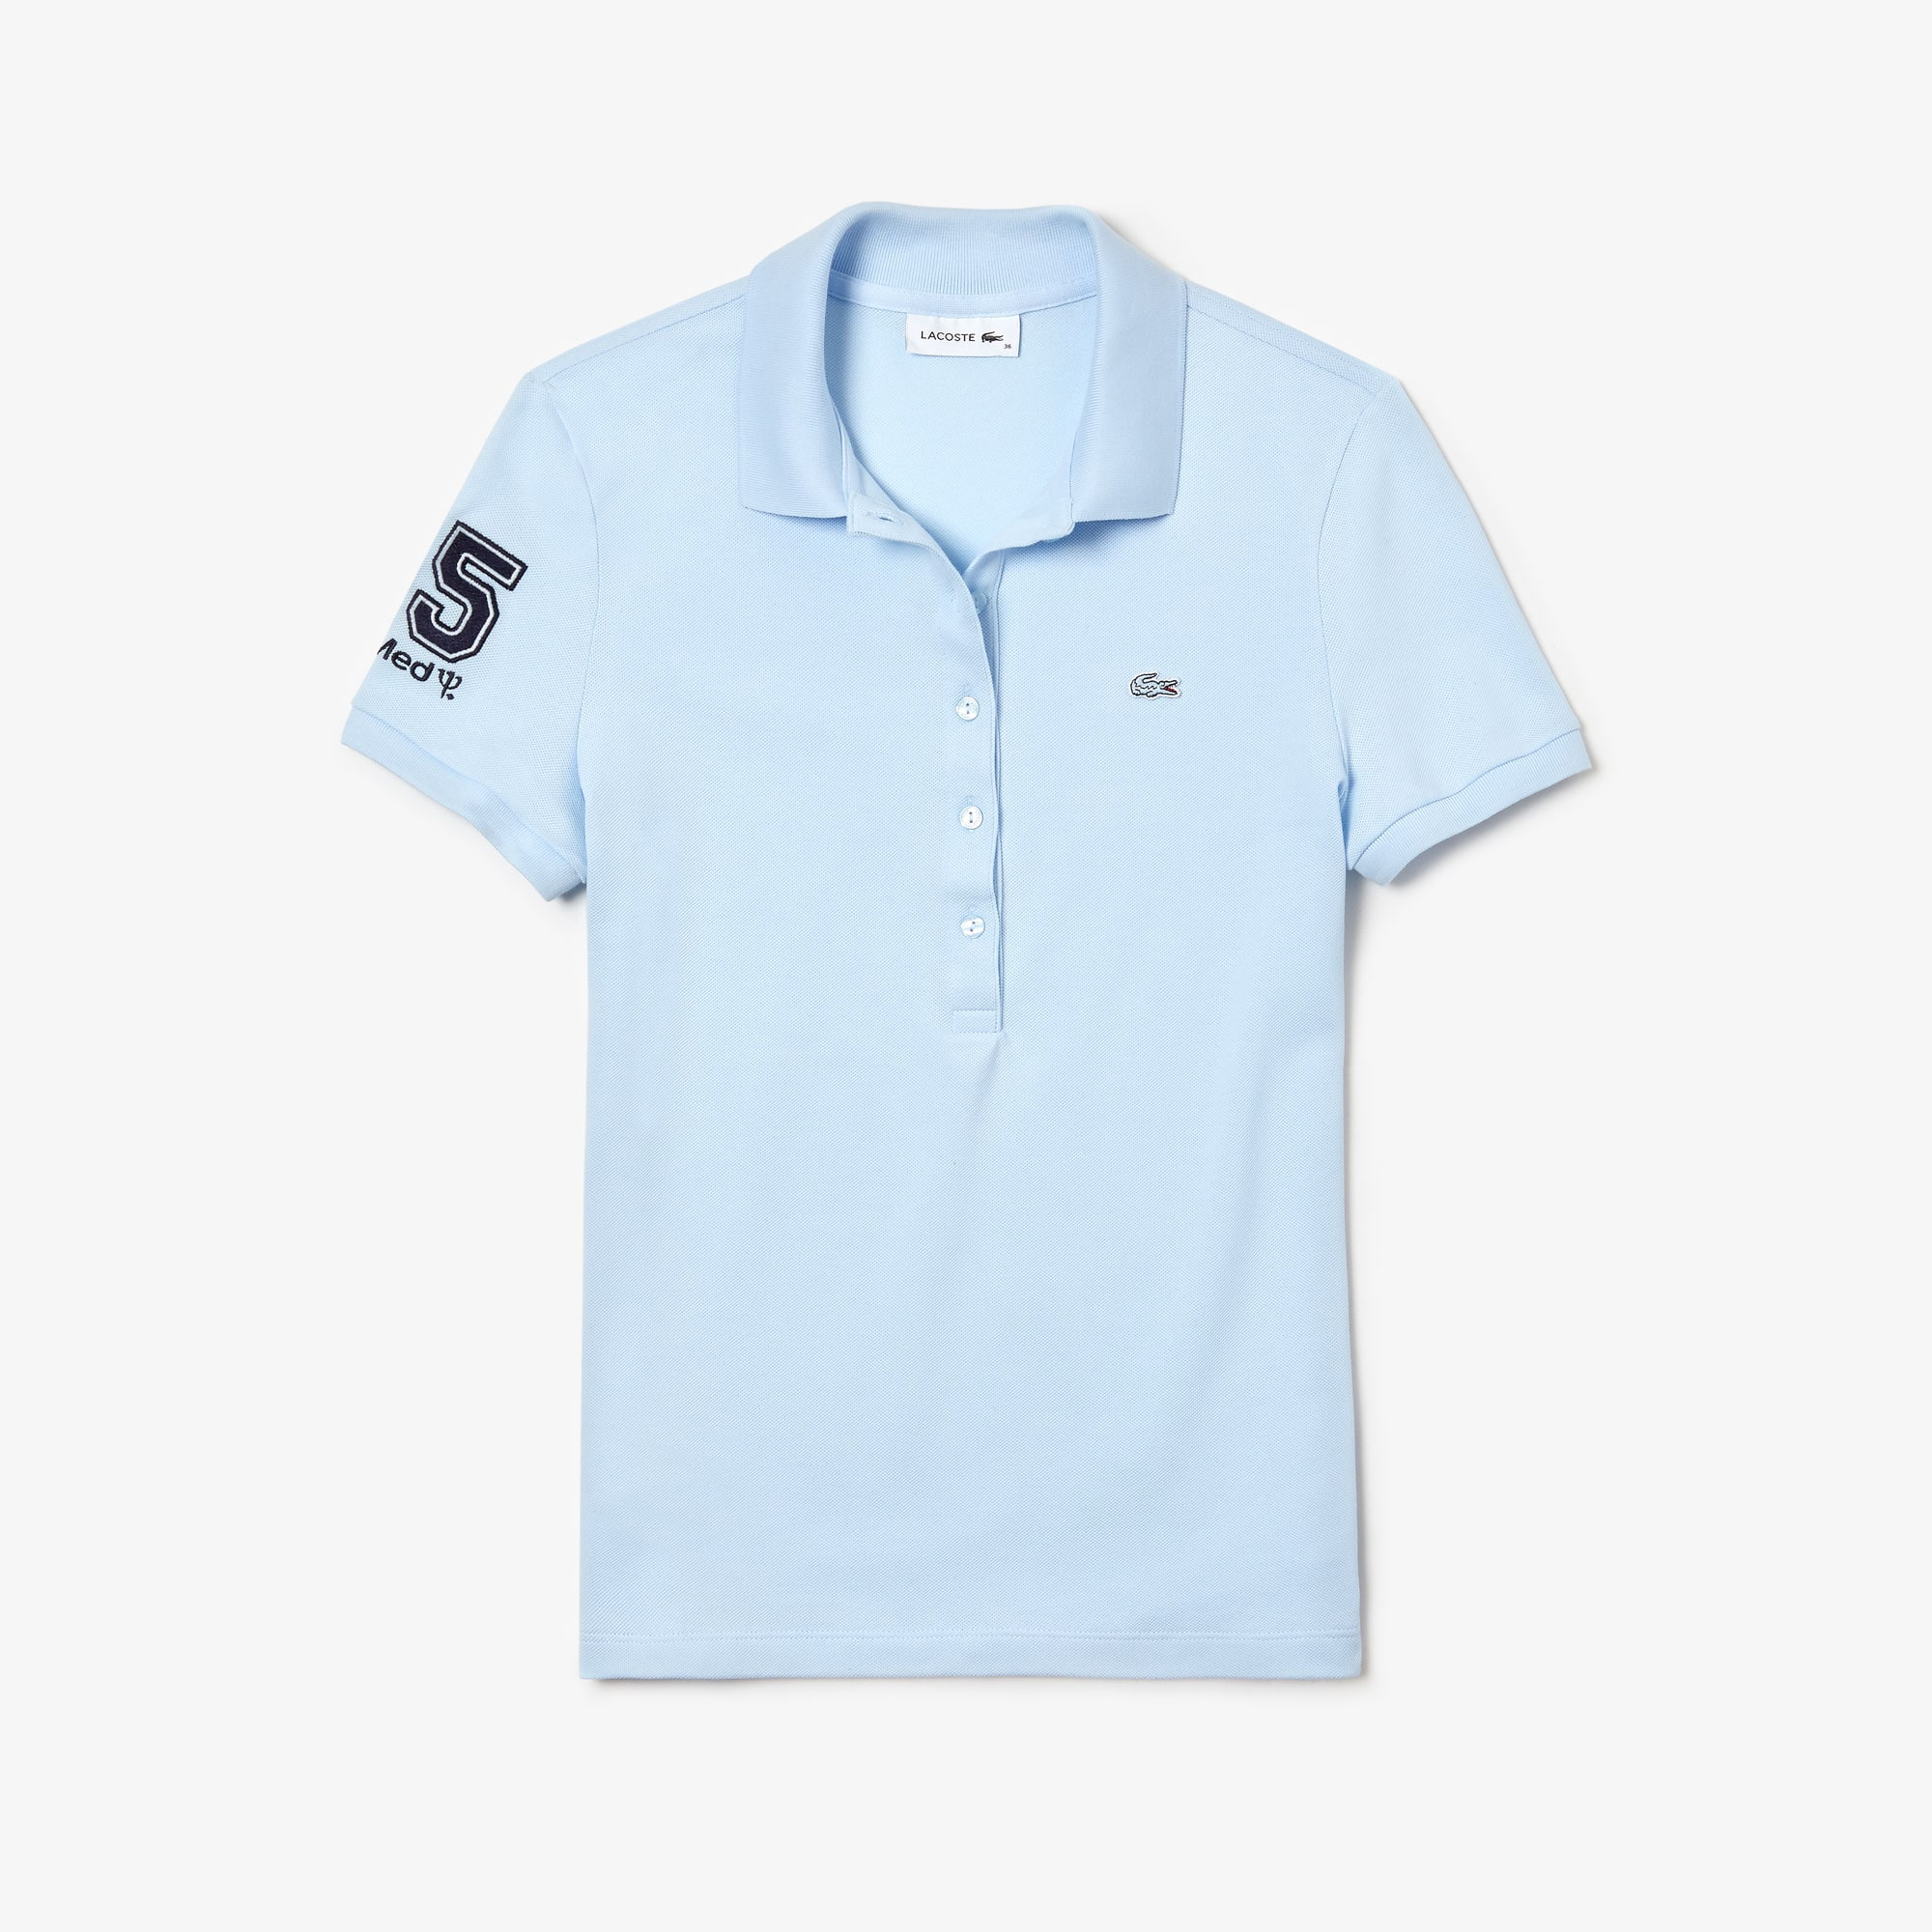 Polo Feminin Lacoste en coton stretch - Club Med